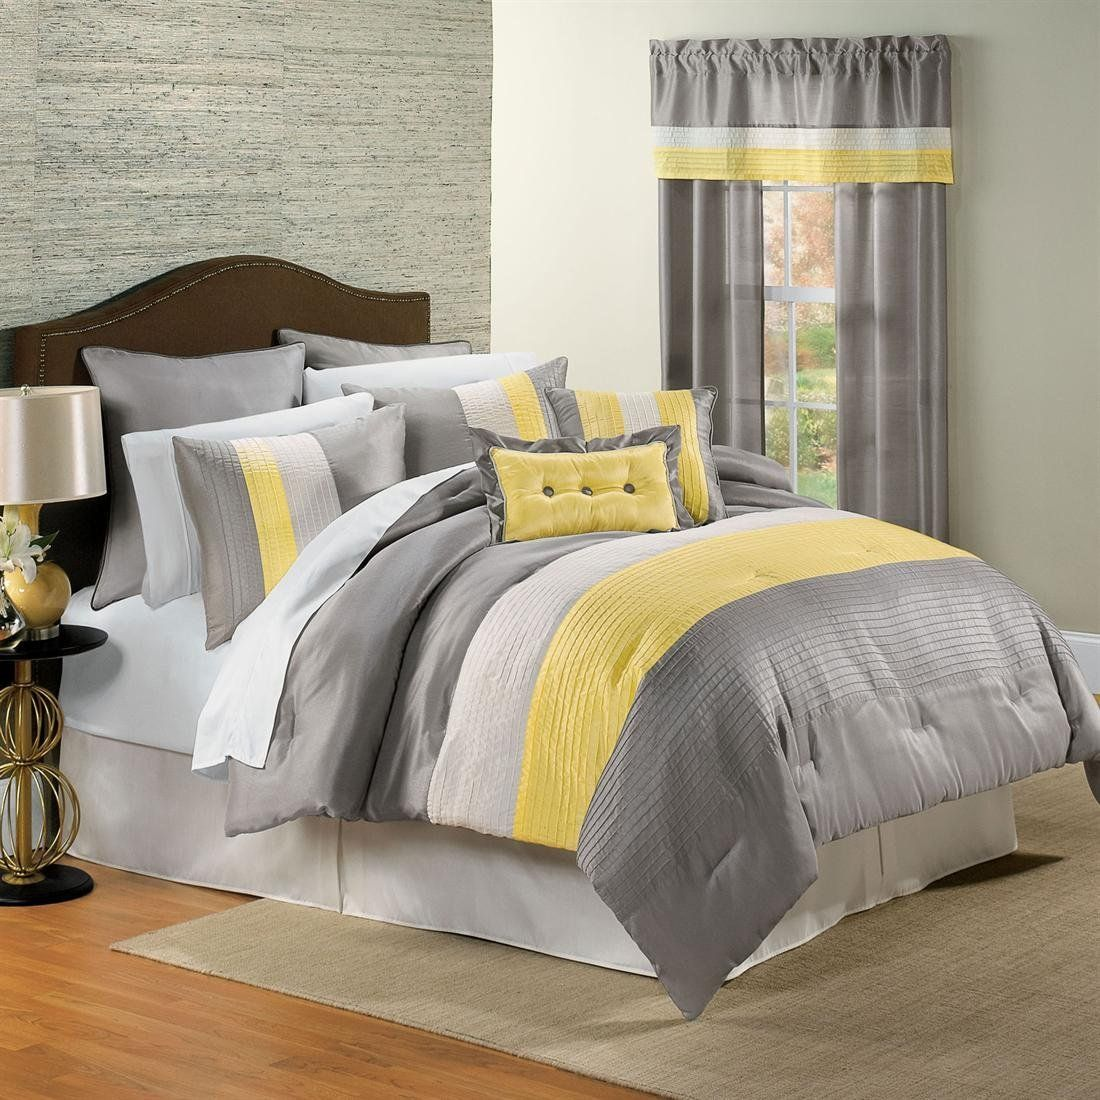 Bedding Decor: Yellow And Grey Bedding On Pinterest